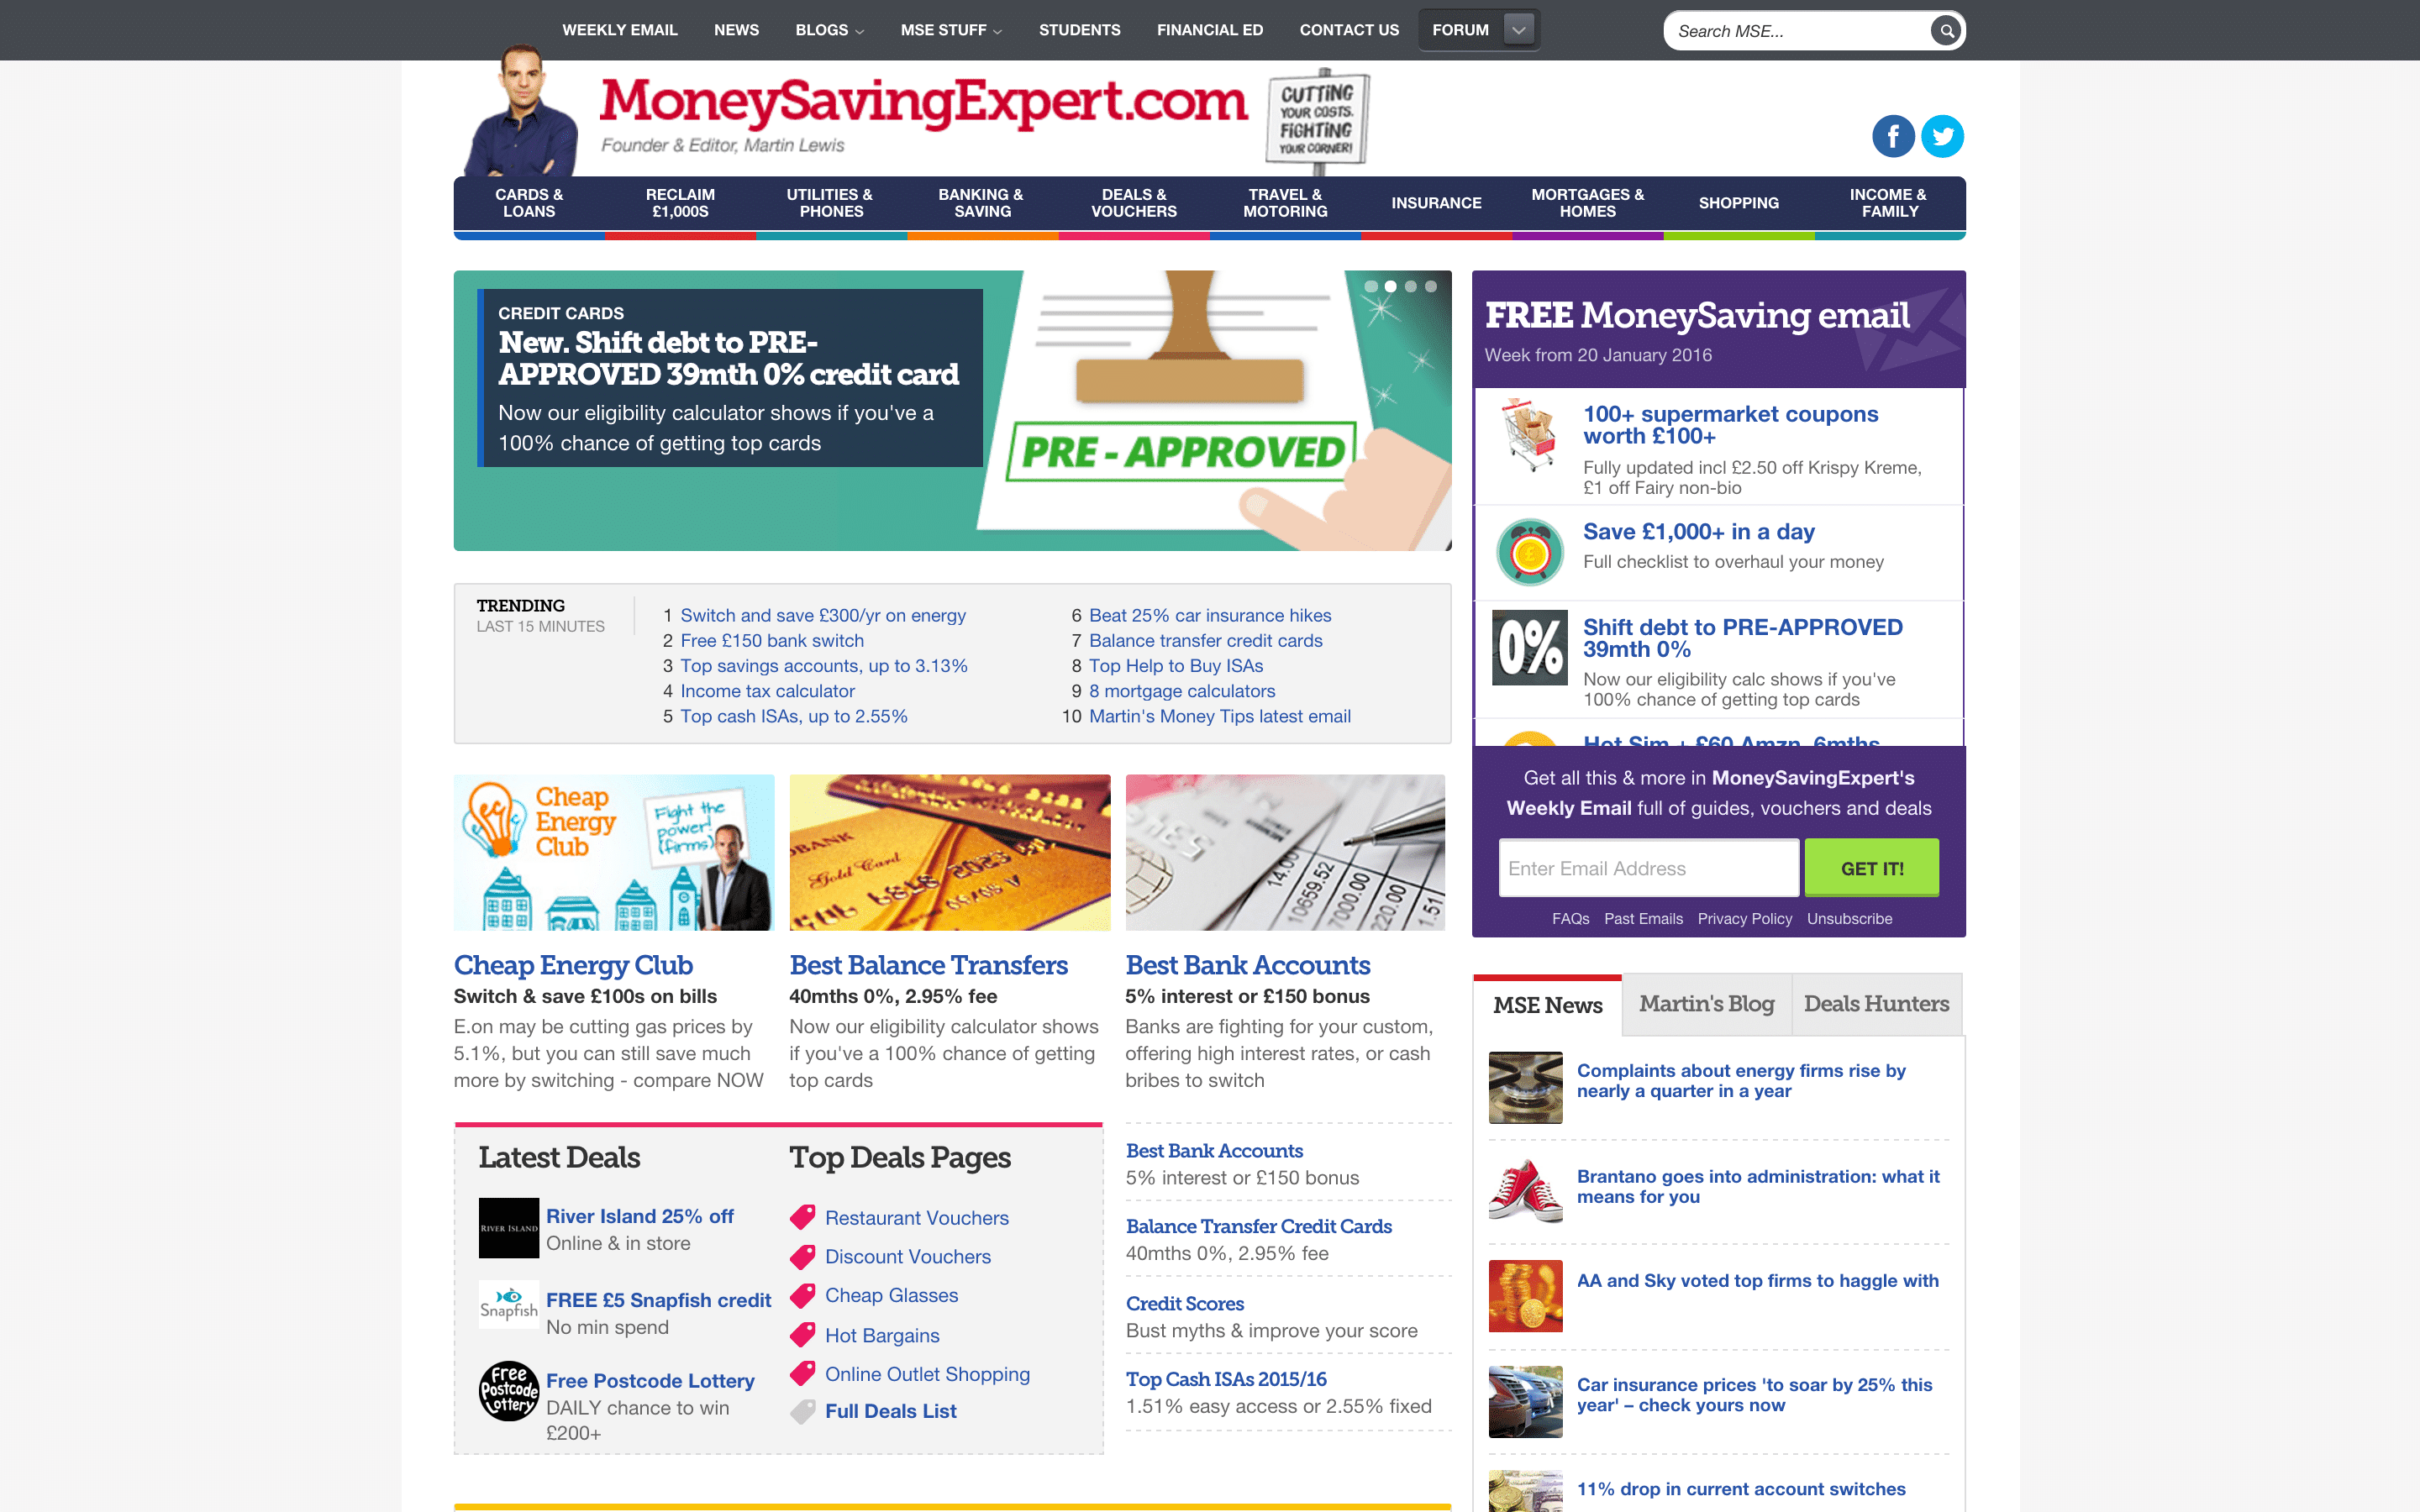 The homepage of MoneySavingExpert.com